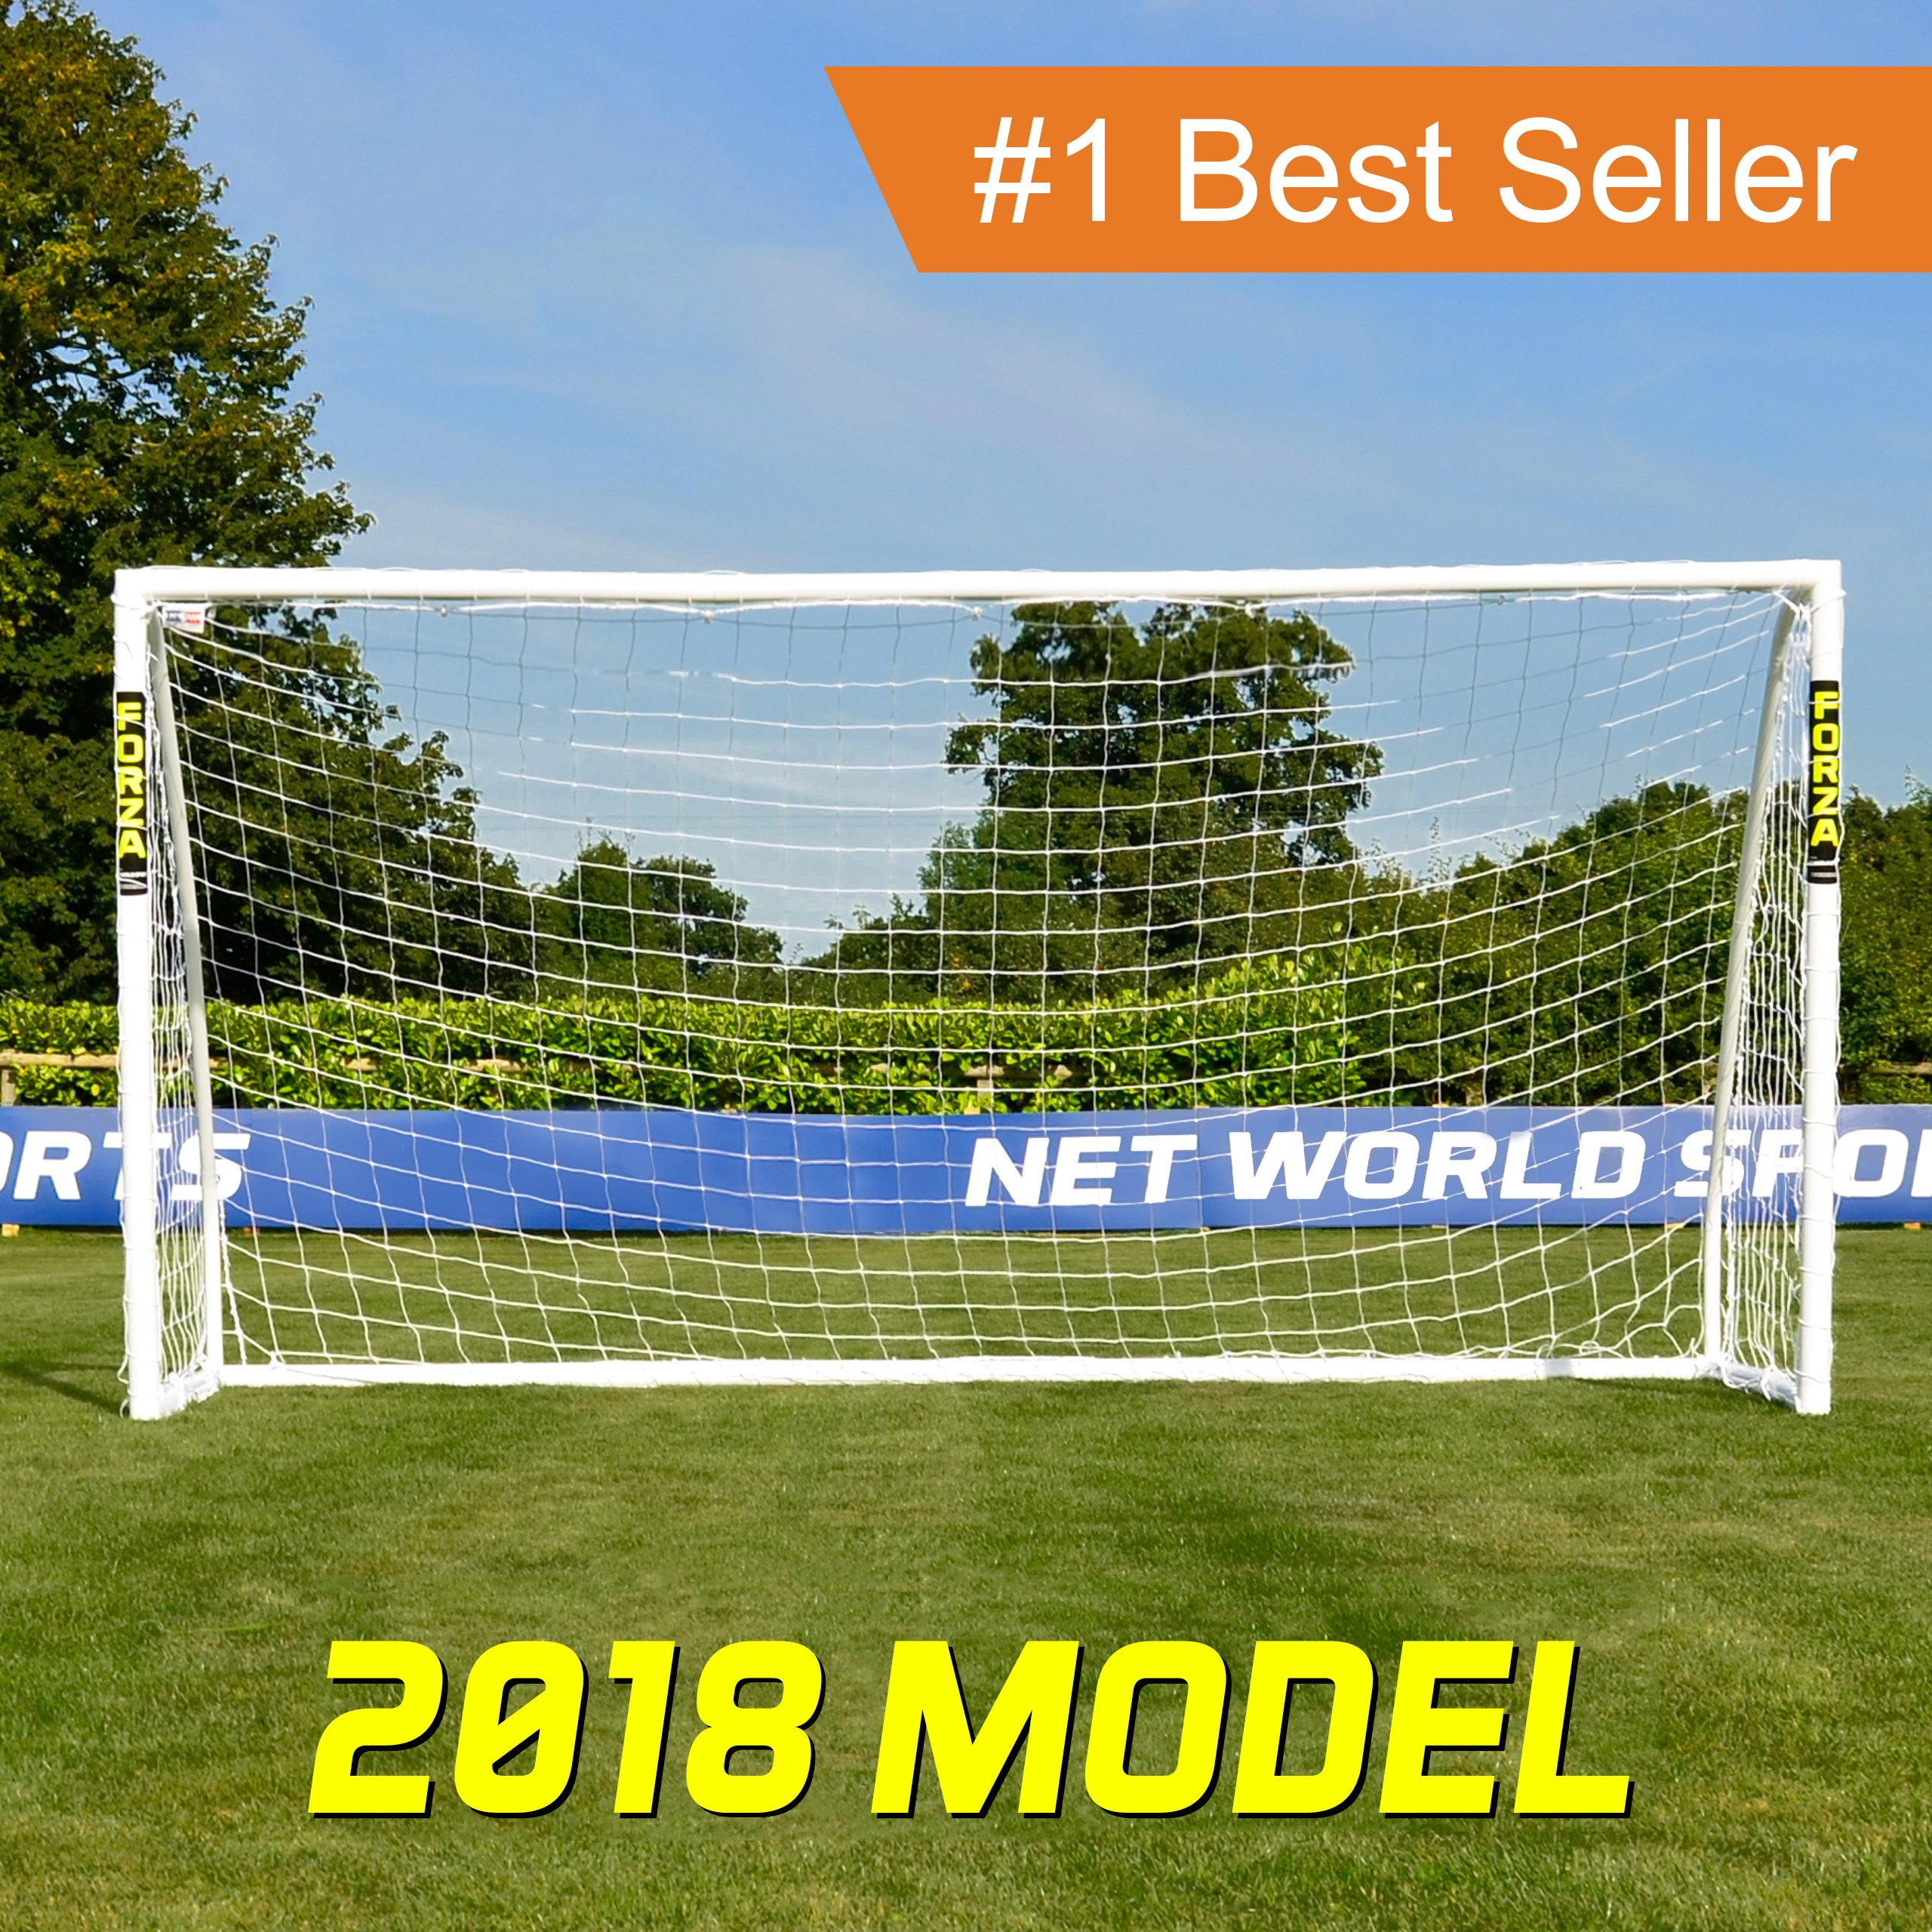 FORZA Soccer Goal - The ultimate 2016 home soccer goal! Leave up in all weathers & takes 1000s of shots!